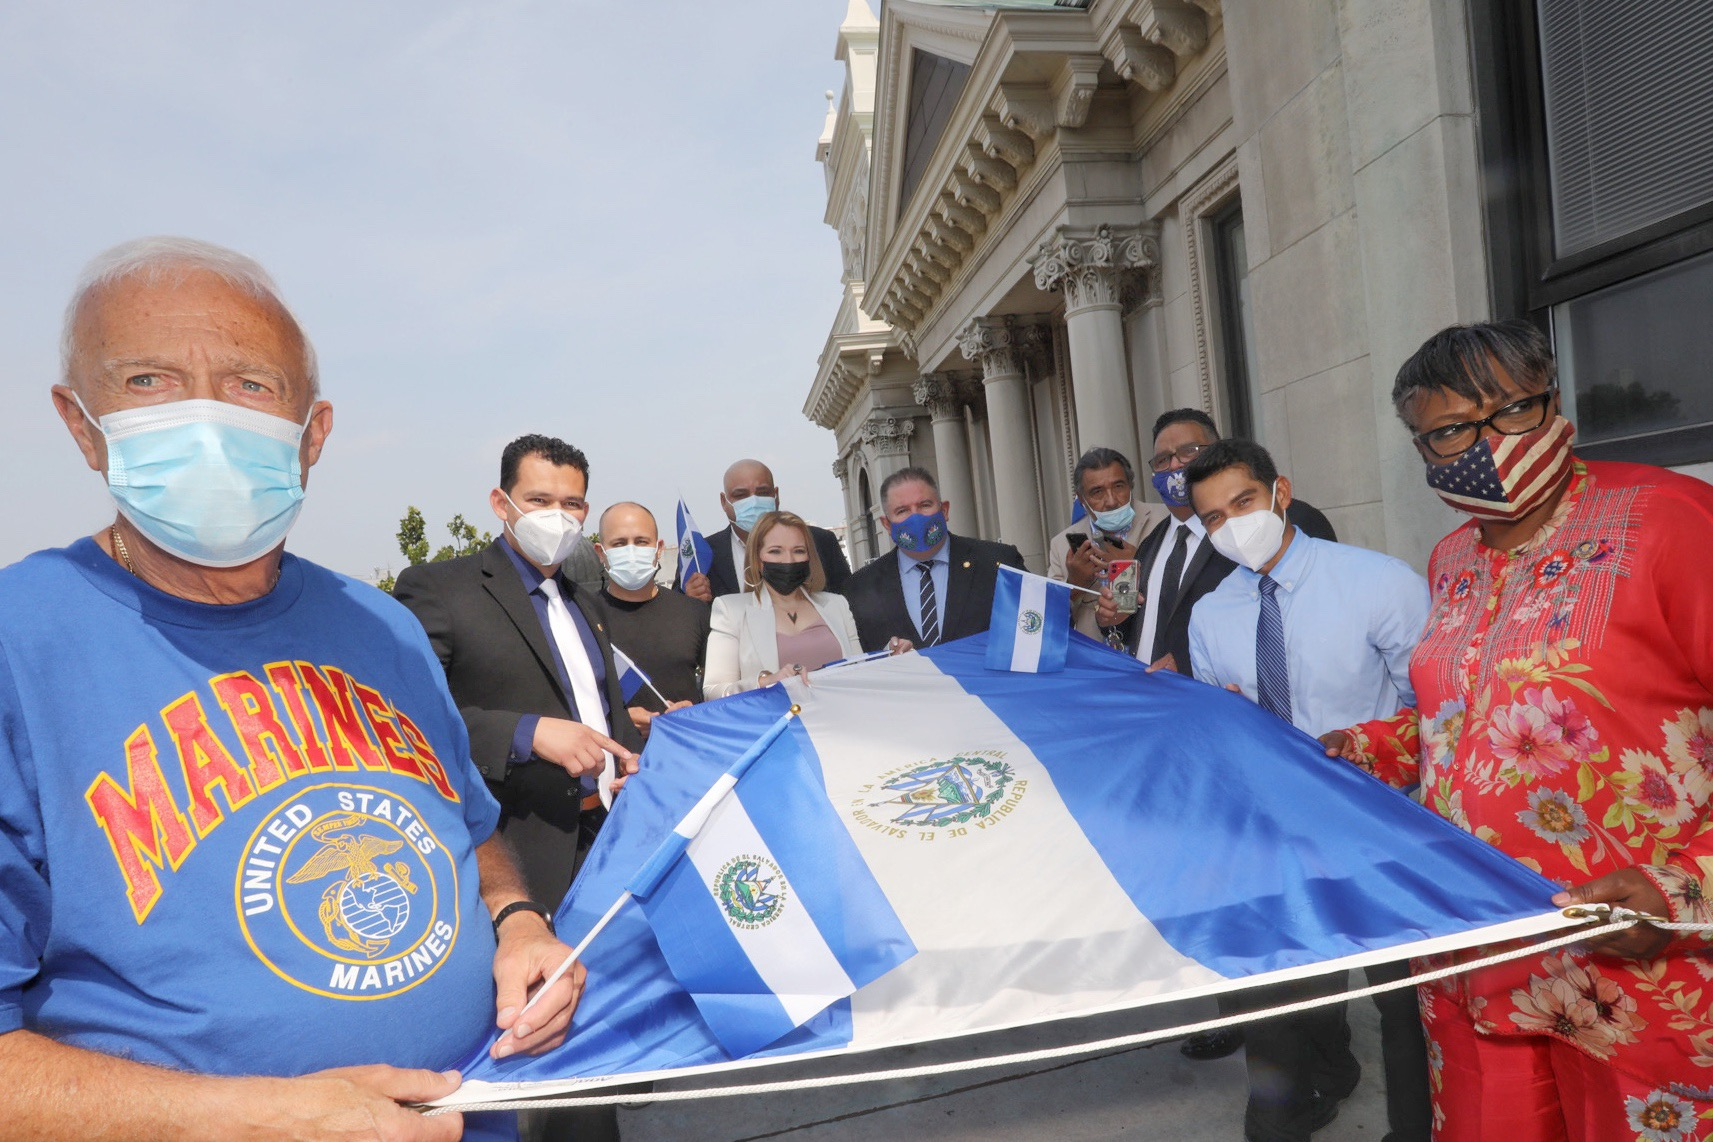 A group of citizens hold the flag before it is raised. The flag of El Salvador features a horizontal triband of cobalt blue-white-cobalt blue, with the coat of arms centered and entirely contained within the central white stripe. This design of a triband of blue-white-blue is commonly used among Central American countries.